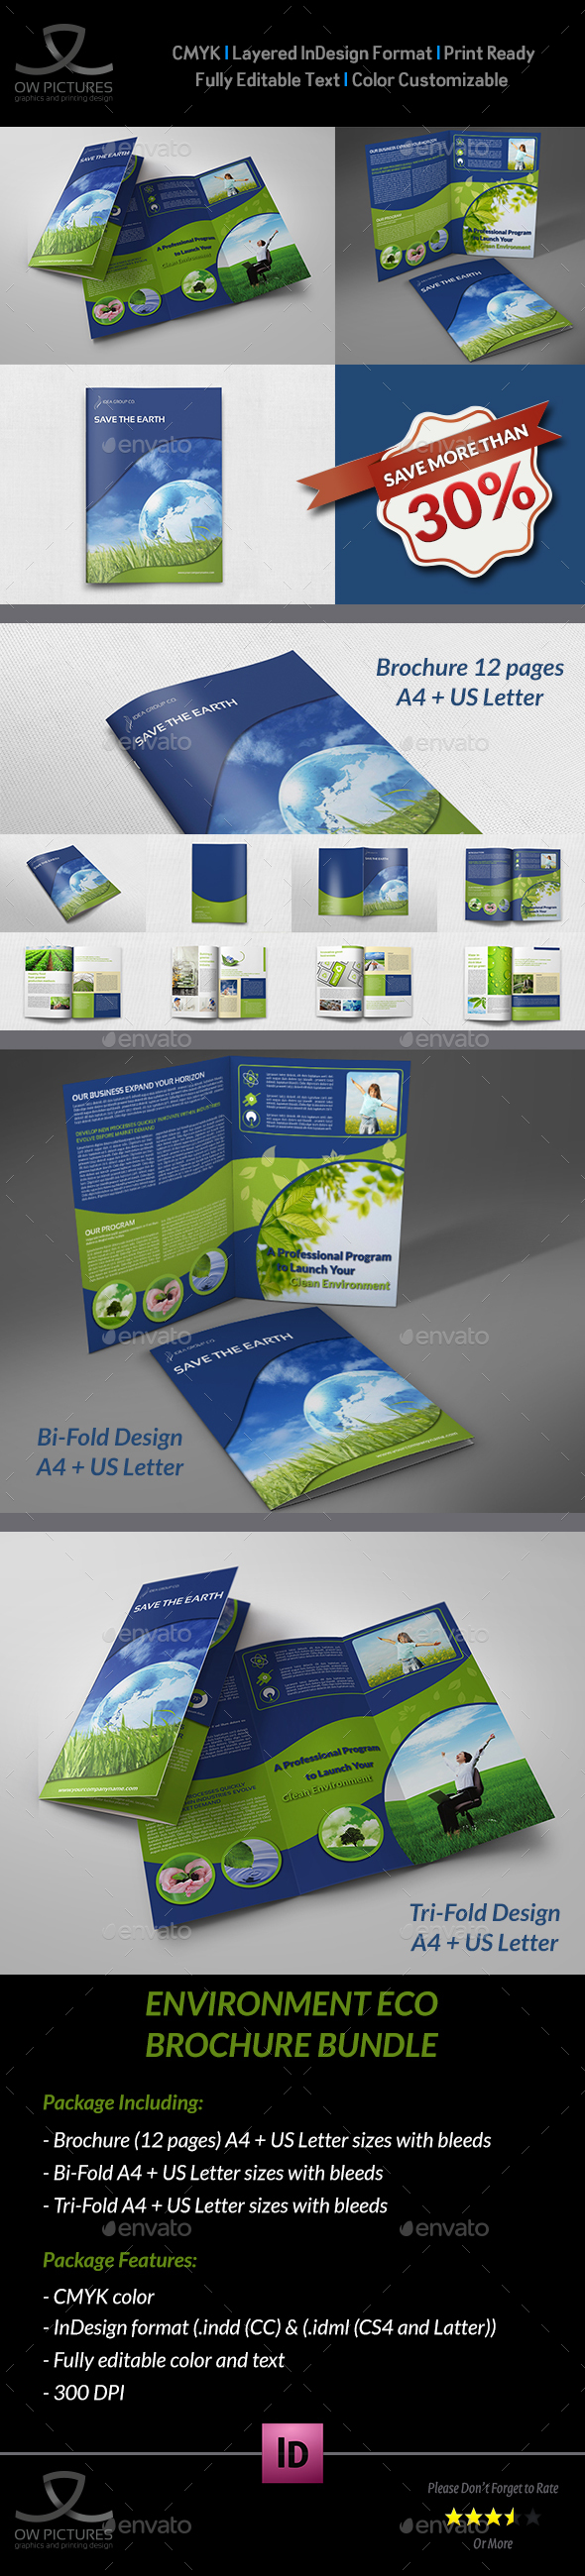 Environment ECO Brochure Bundle Template